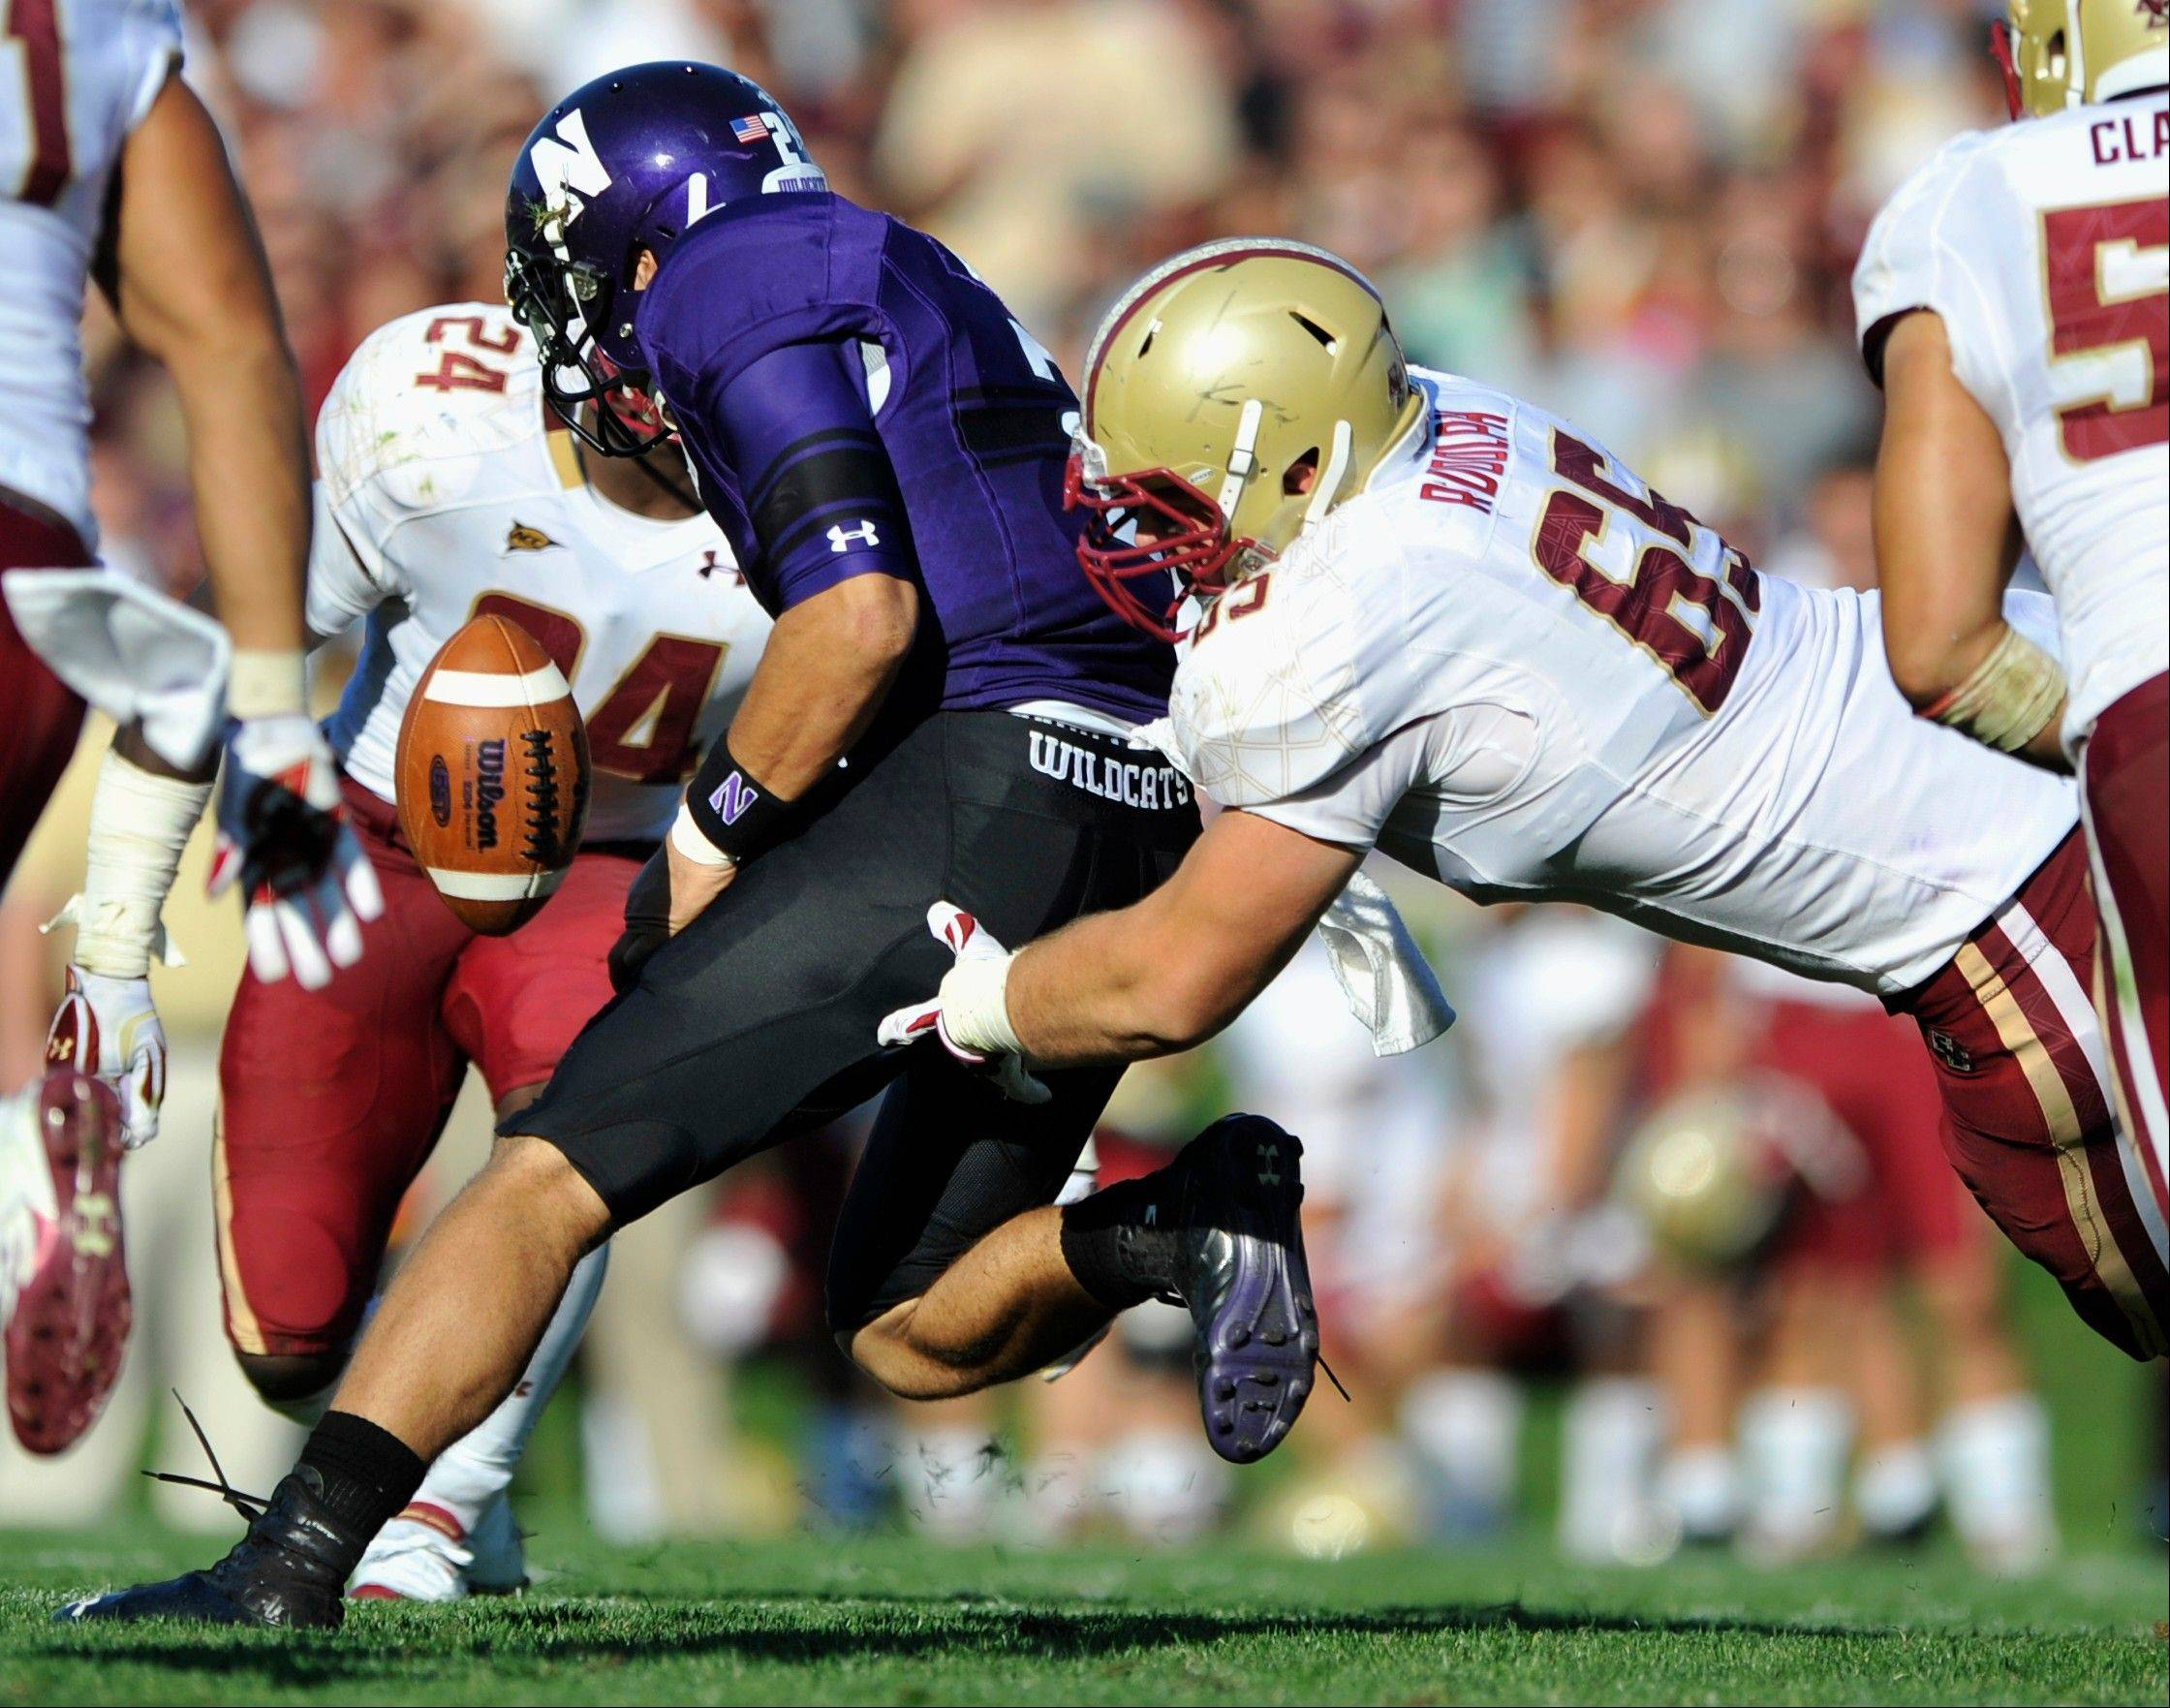 Boston College's Jaryd Rudolph forces Northwestern quarterback Kain Colter to fumble during the third quarter last Saturday in Evanston.